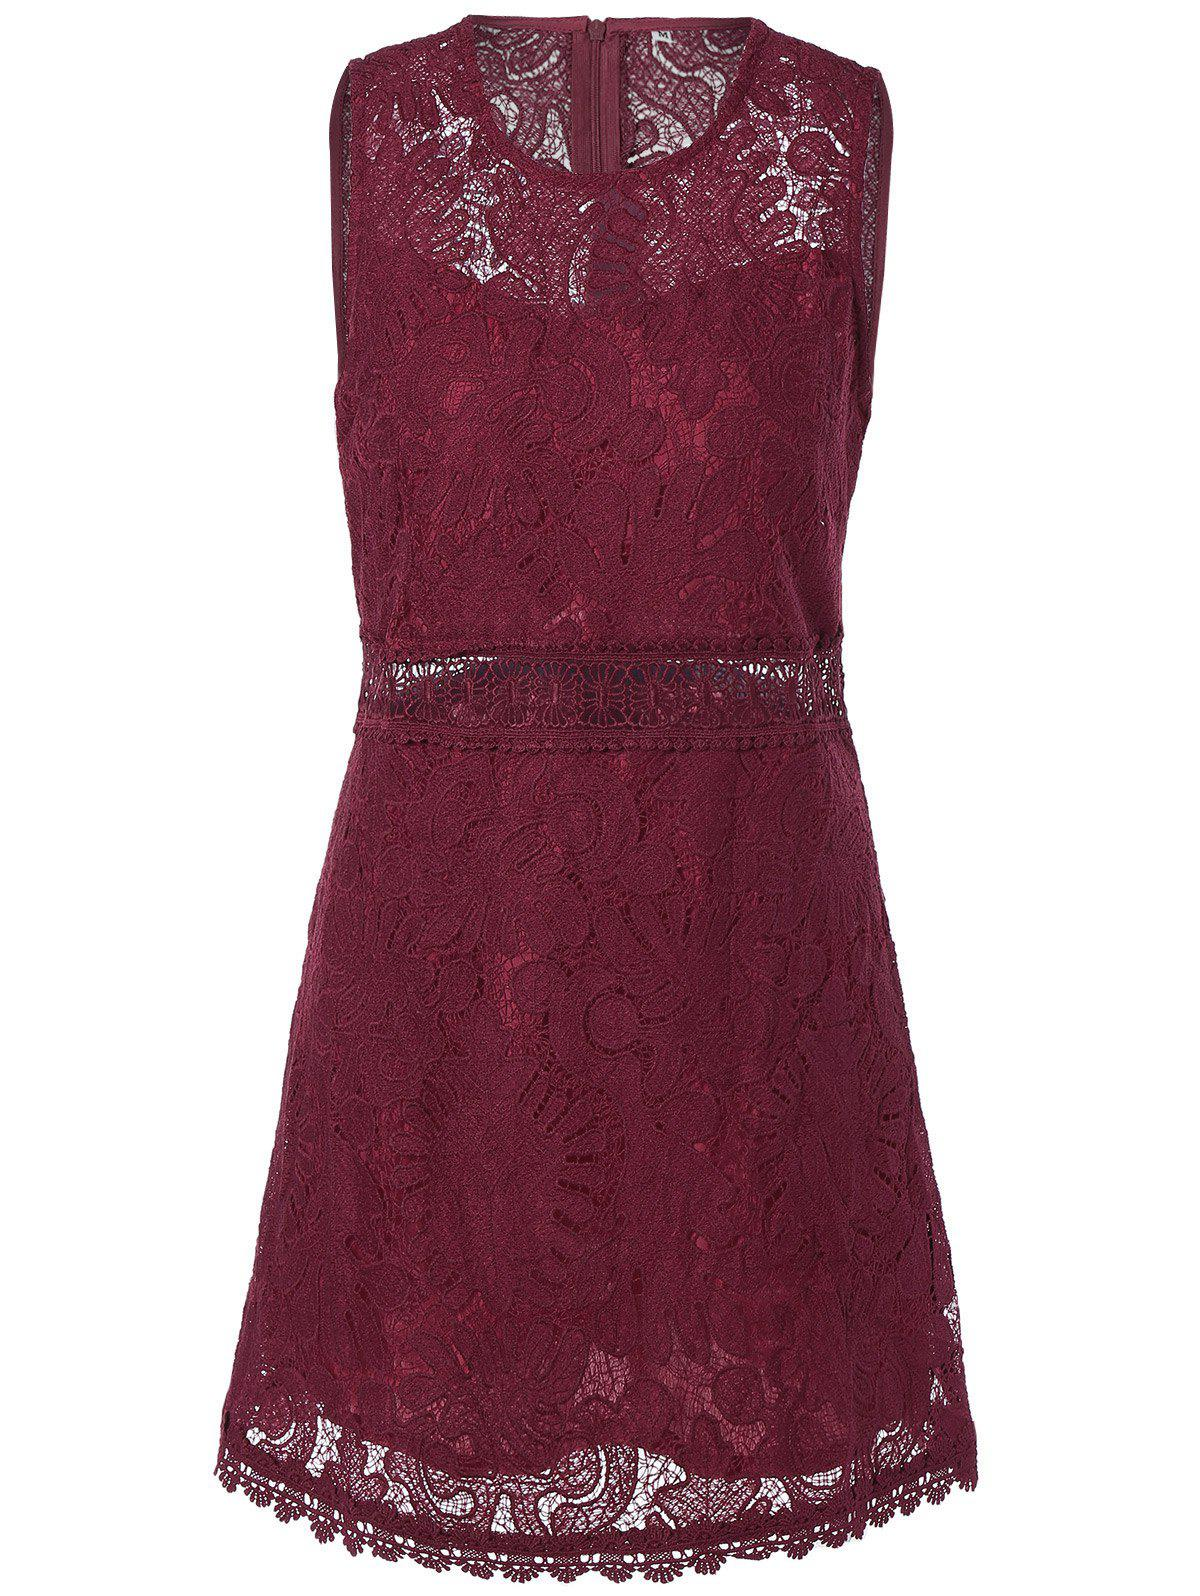 Stylish Women's Round Neck Sleeveless Solid Color Lace Dress - DEEP RED M